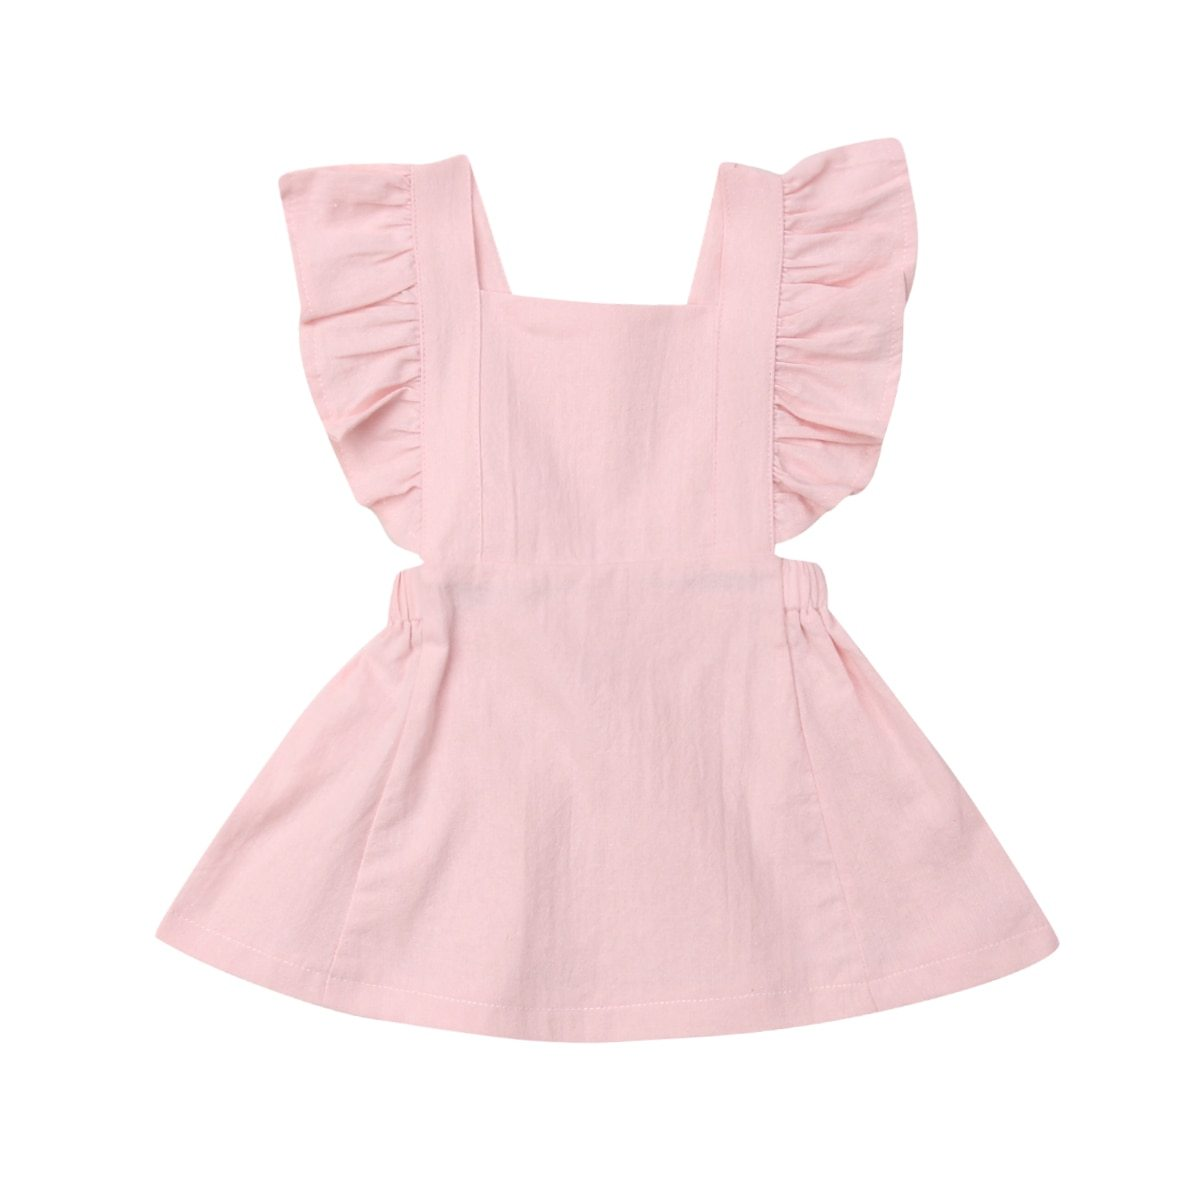 Cute Infant Kids Baby Girl Ruffle Princess Party Dress - asheers4u